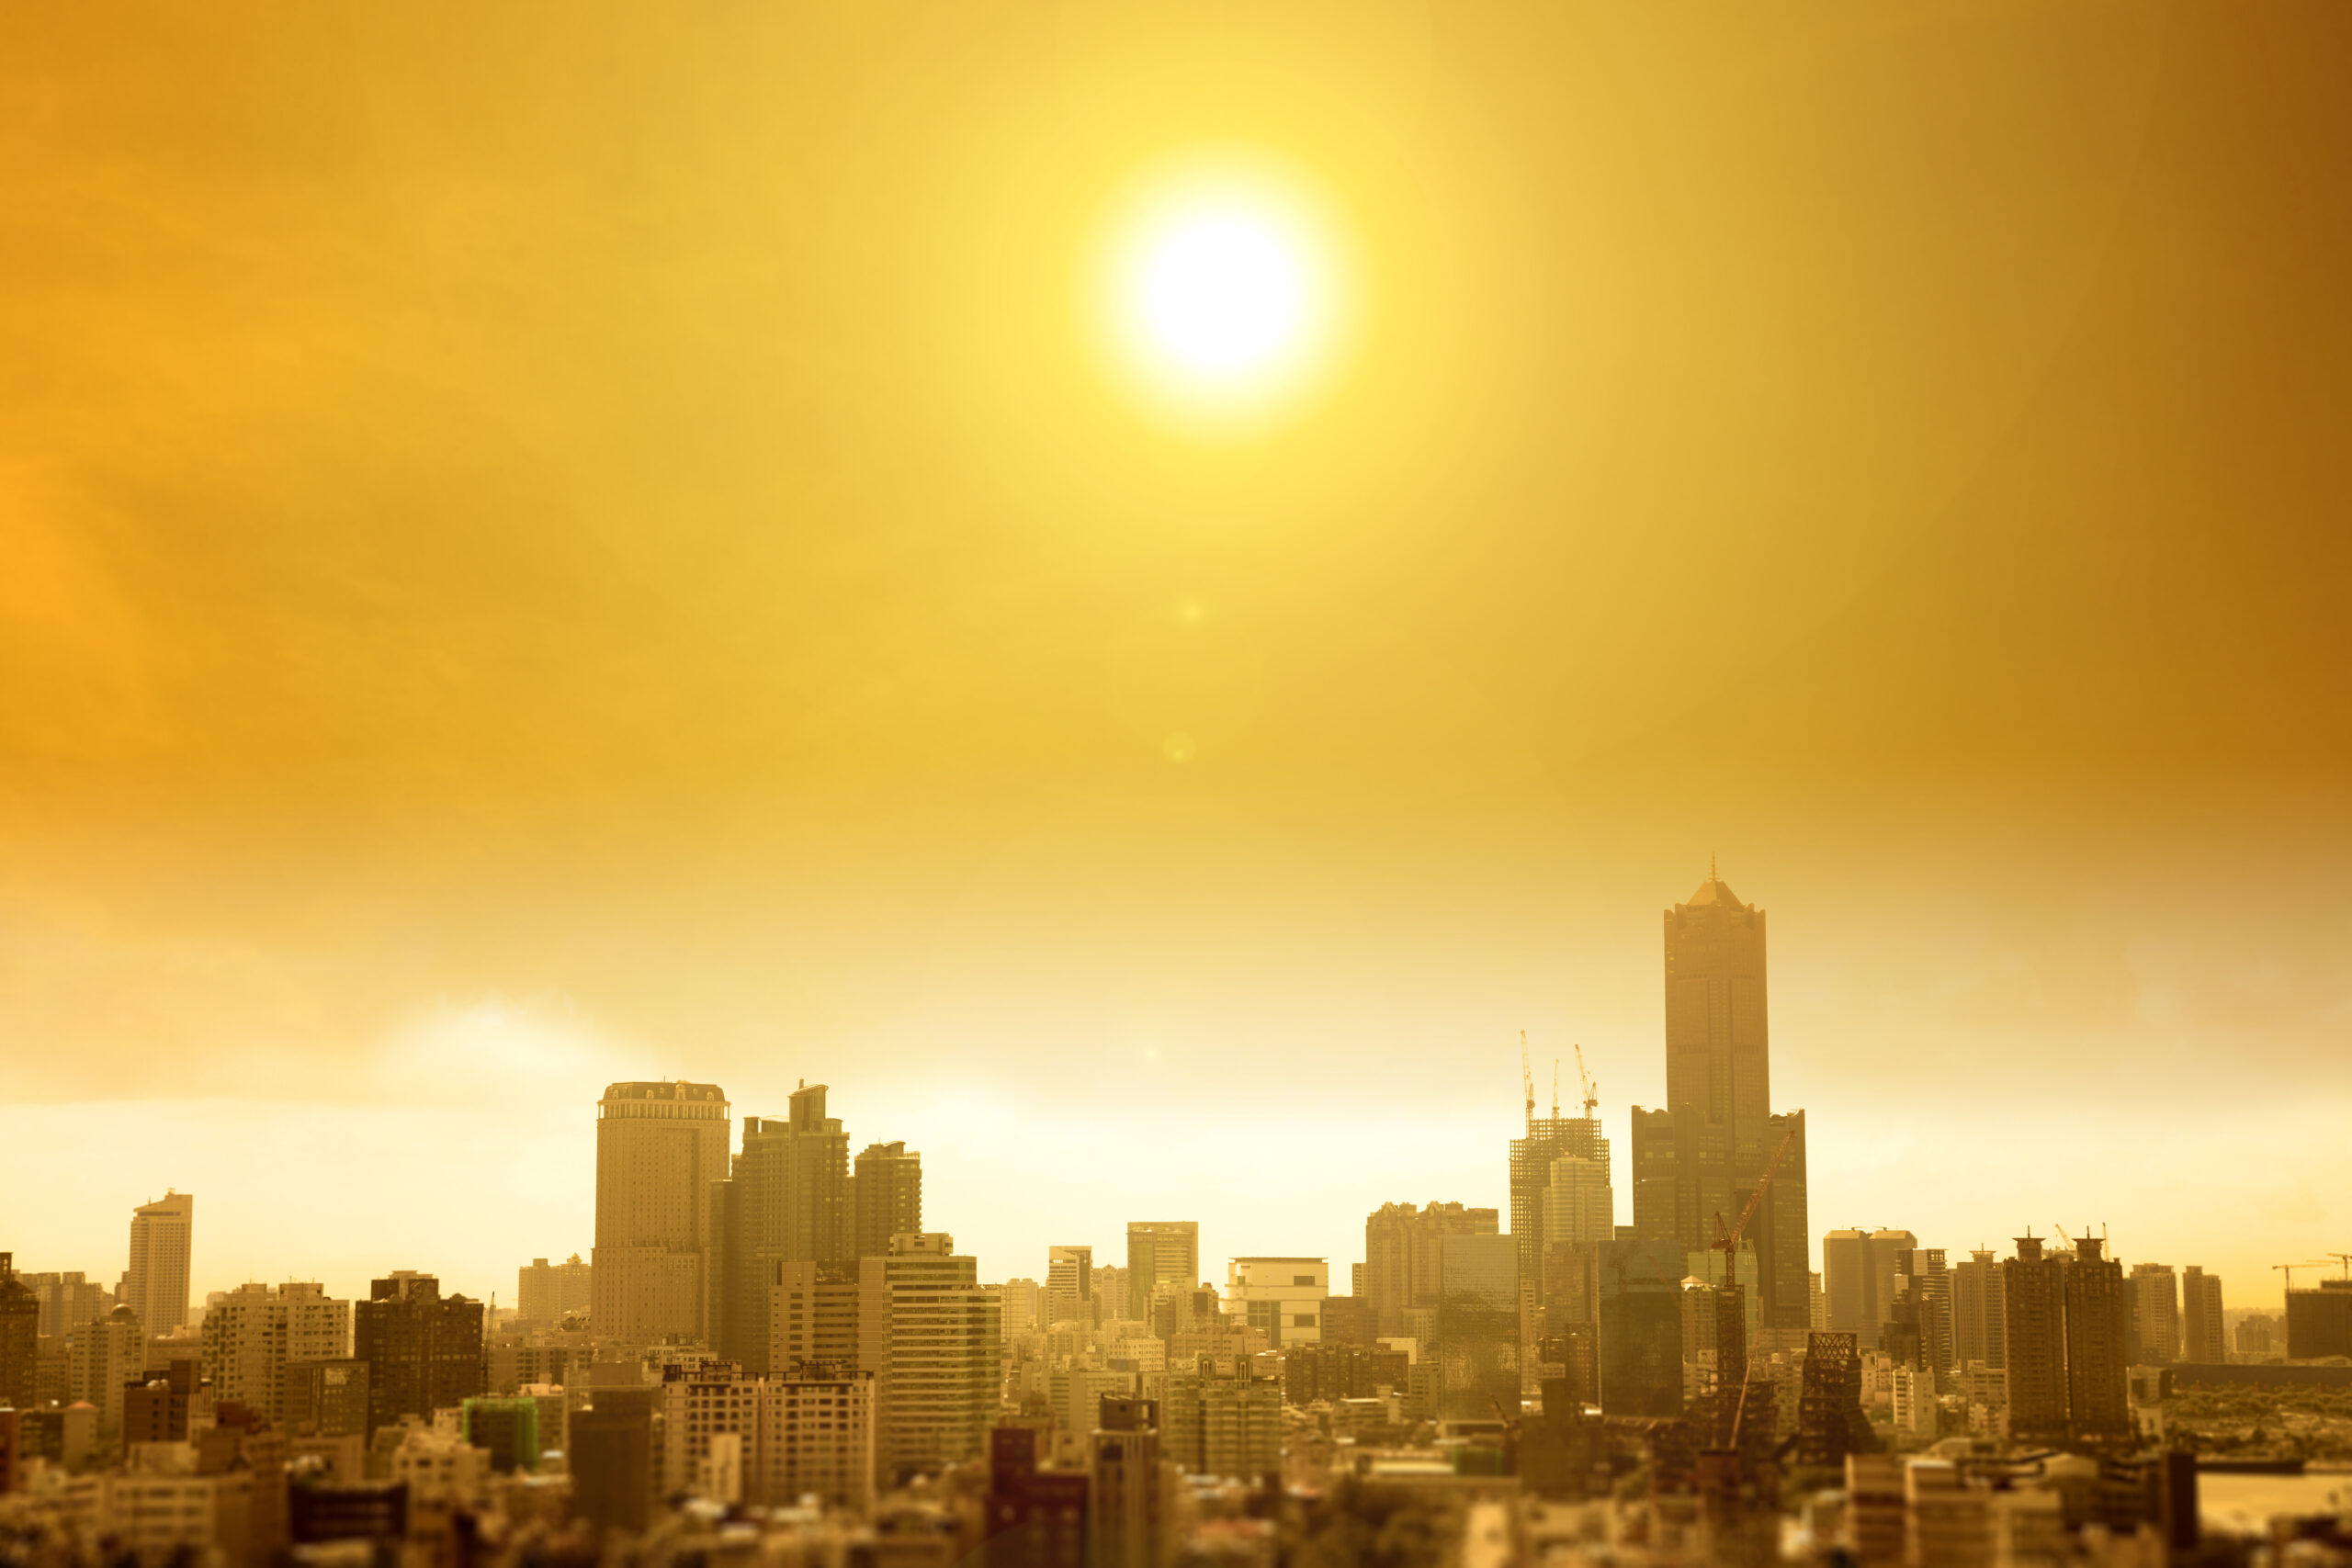 The sun shining over a large cityscape on a hot day.